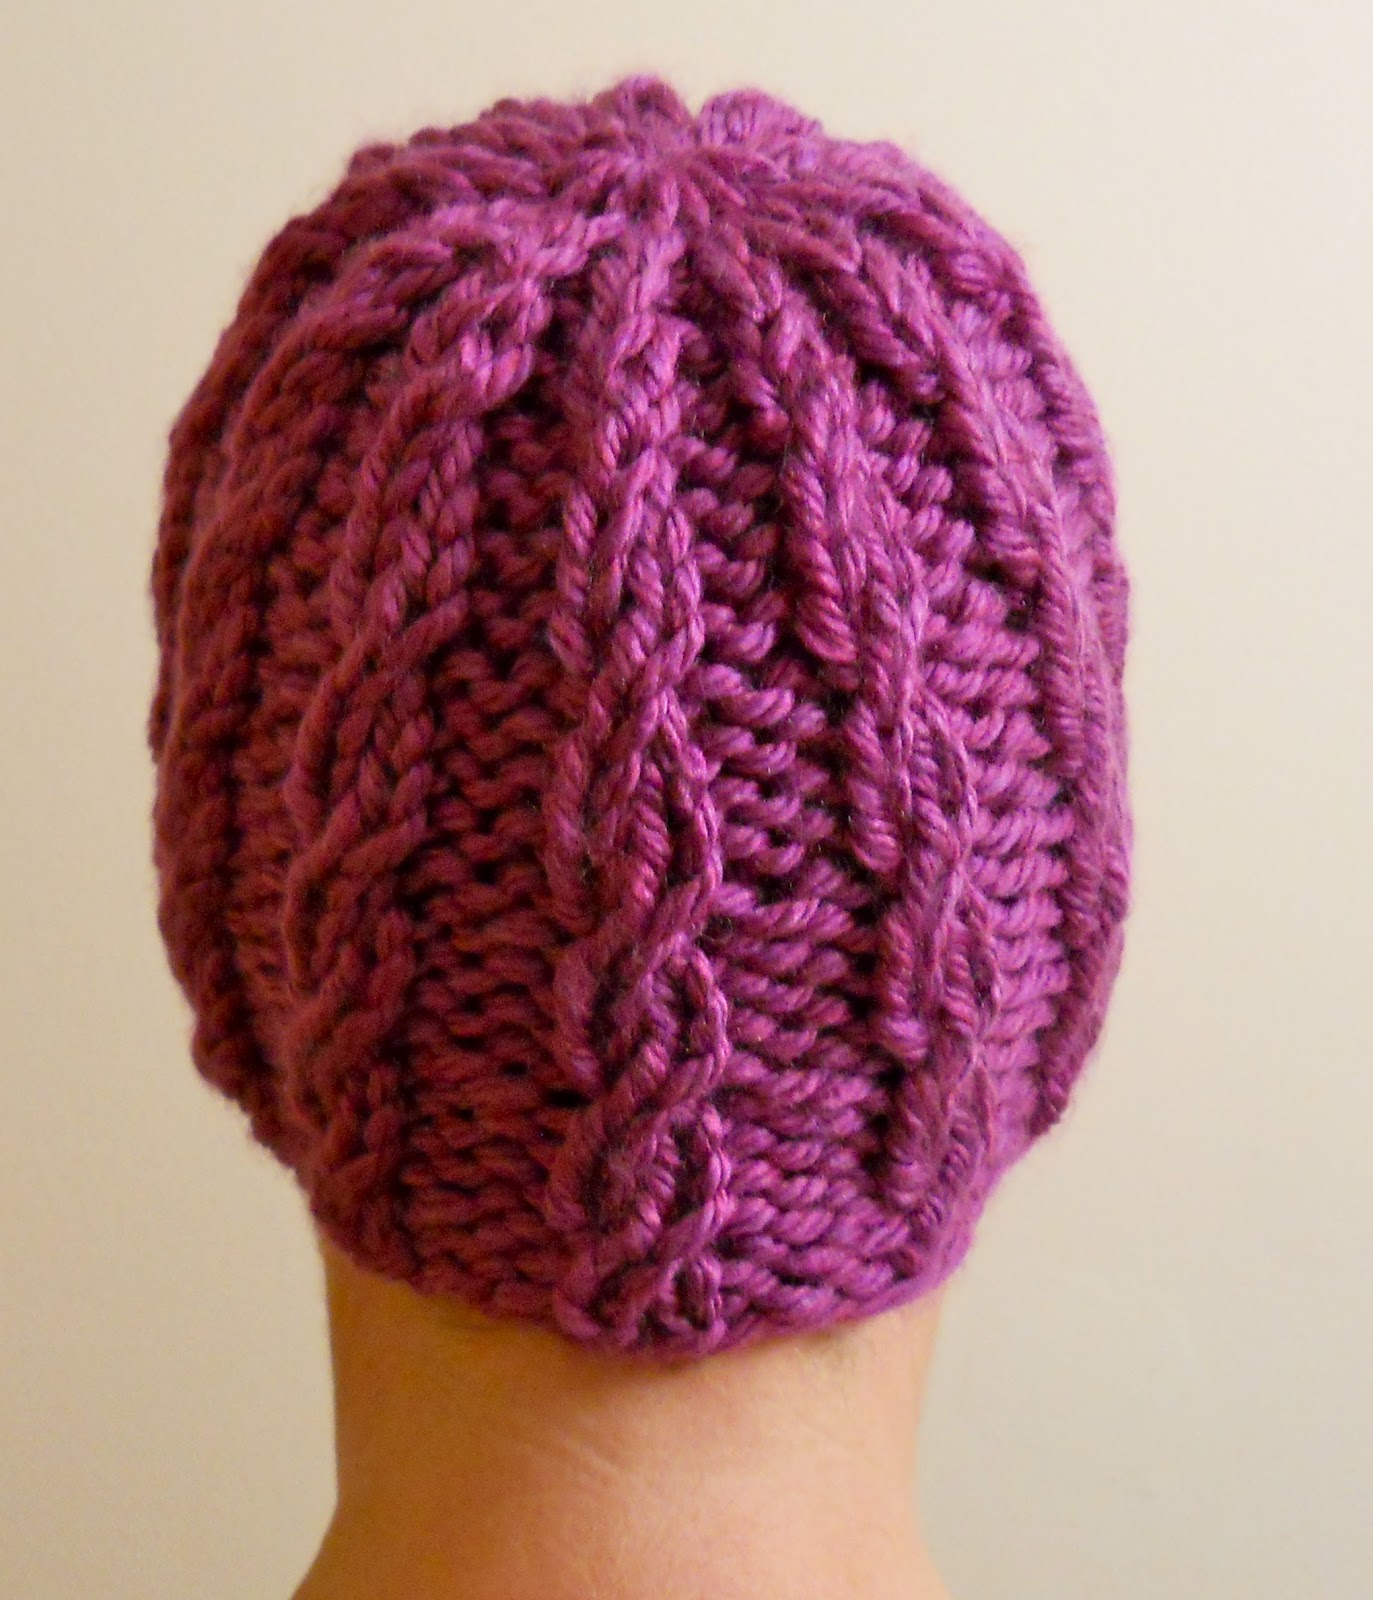 Knitting with Schnapps: Introducing Braided Hope: A Hat ...